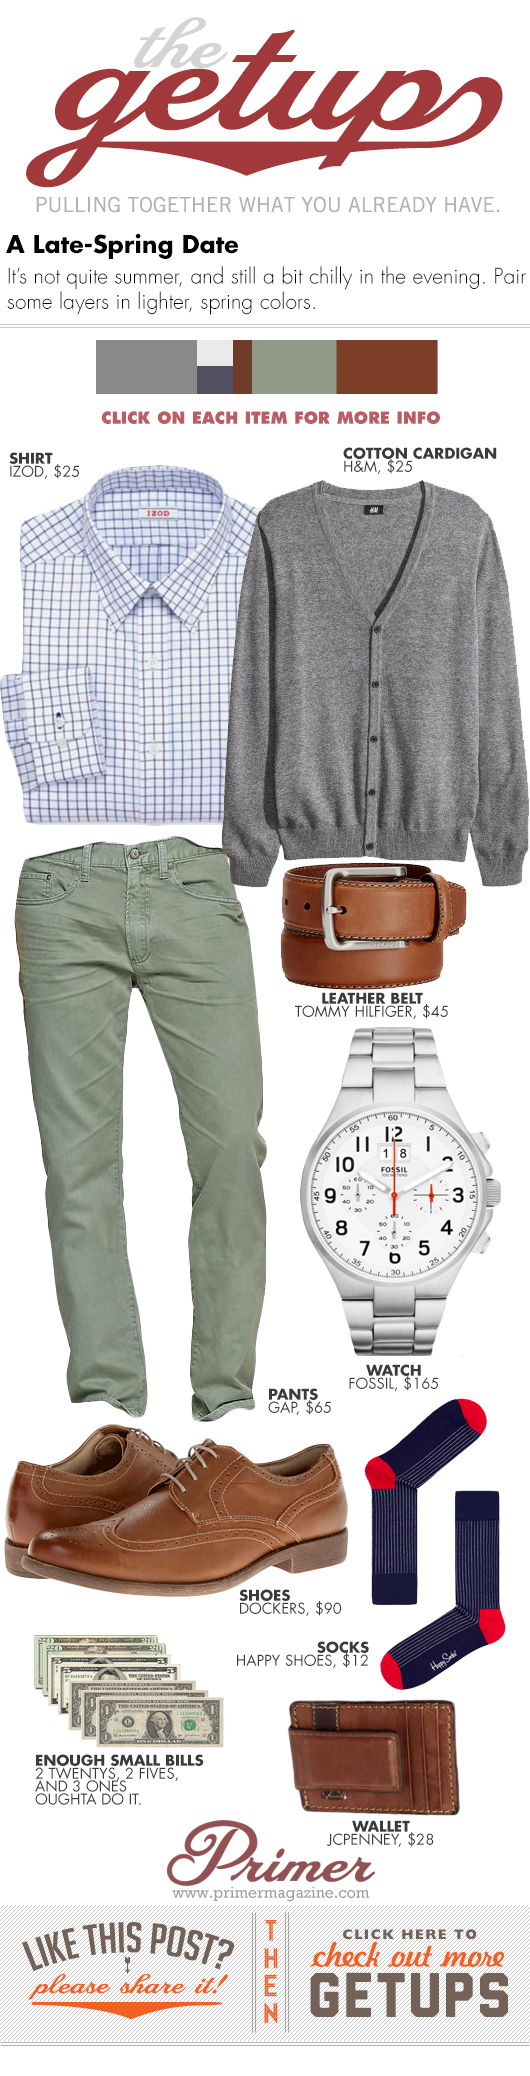 Getup Late Spring Date - Cardigan sweater, check shirt, green pants